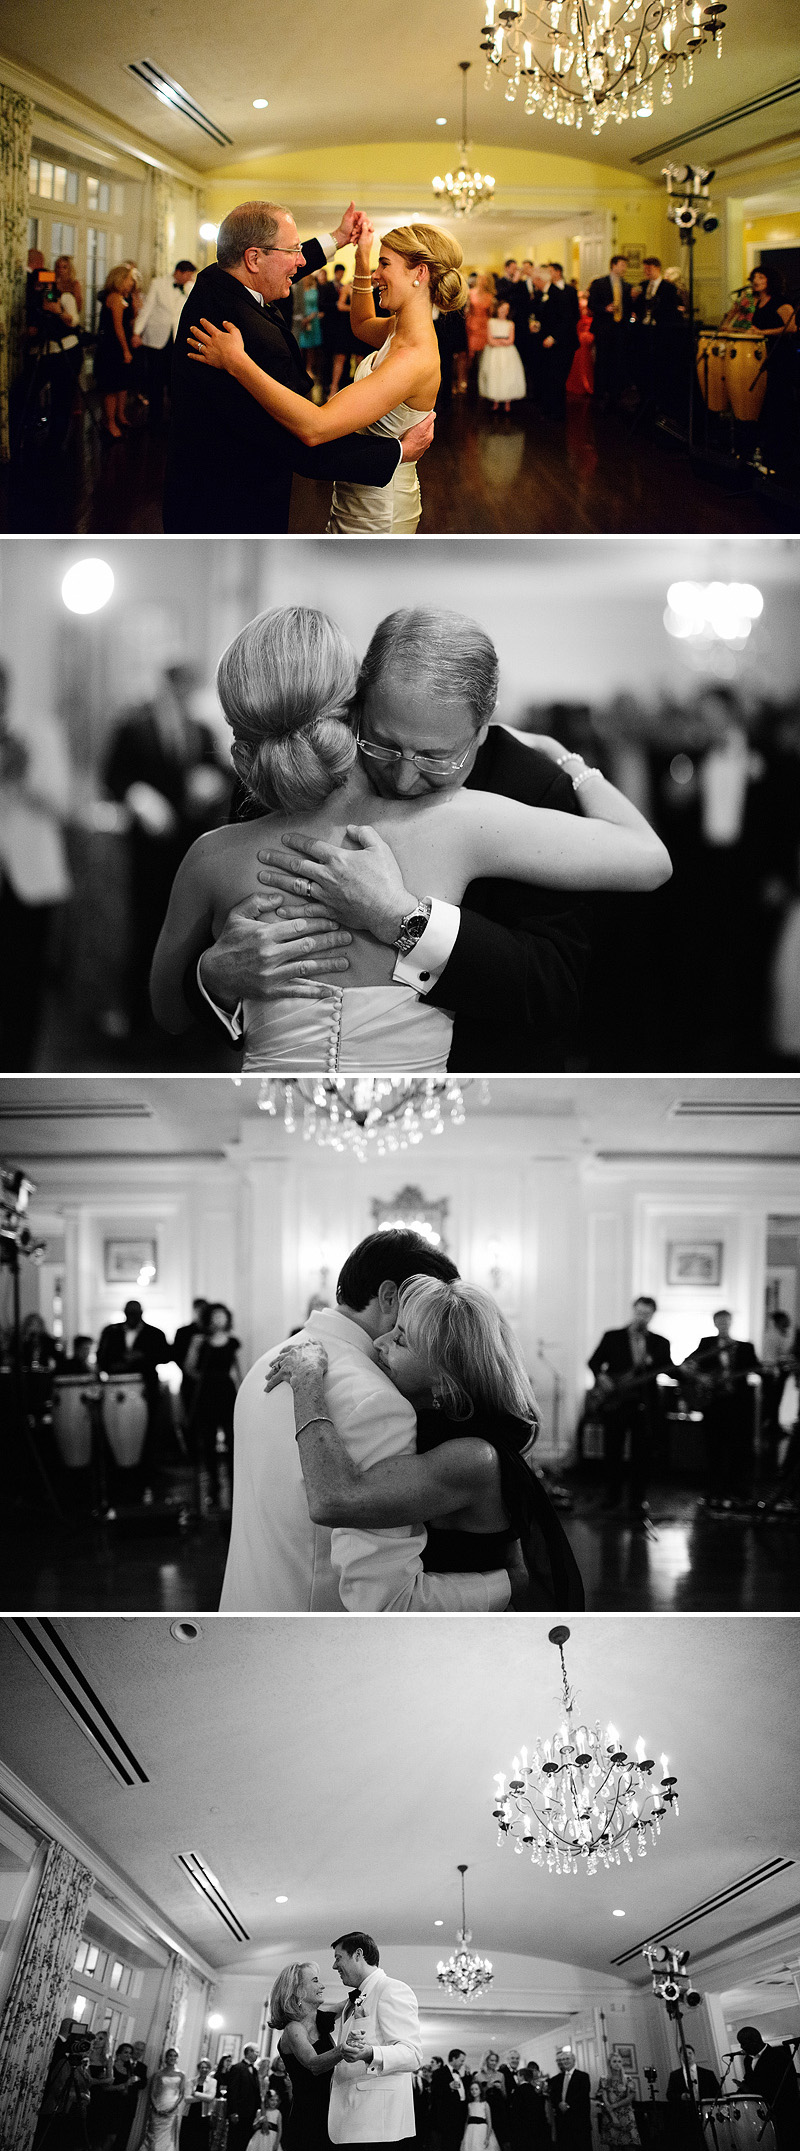 Father Daughter, Mother Son dance at a Kansas City wedding reception.